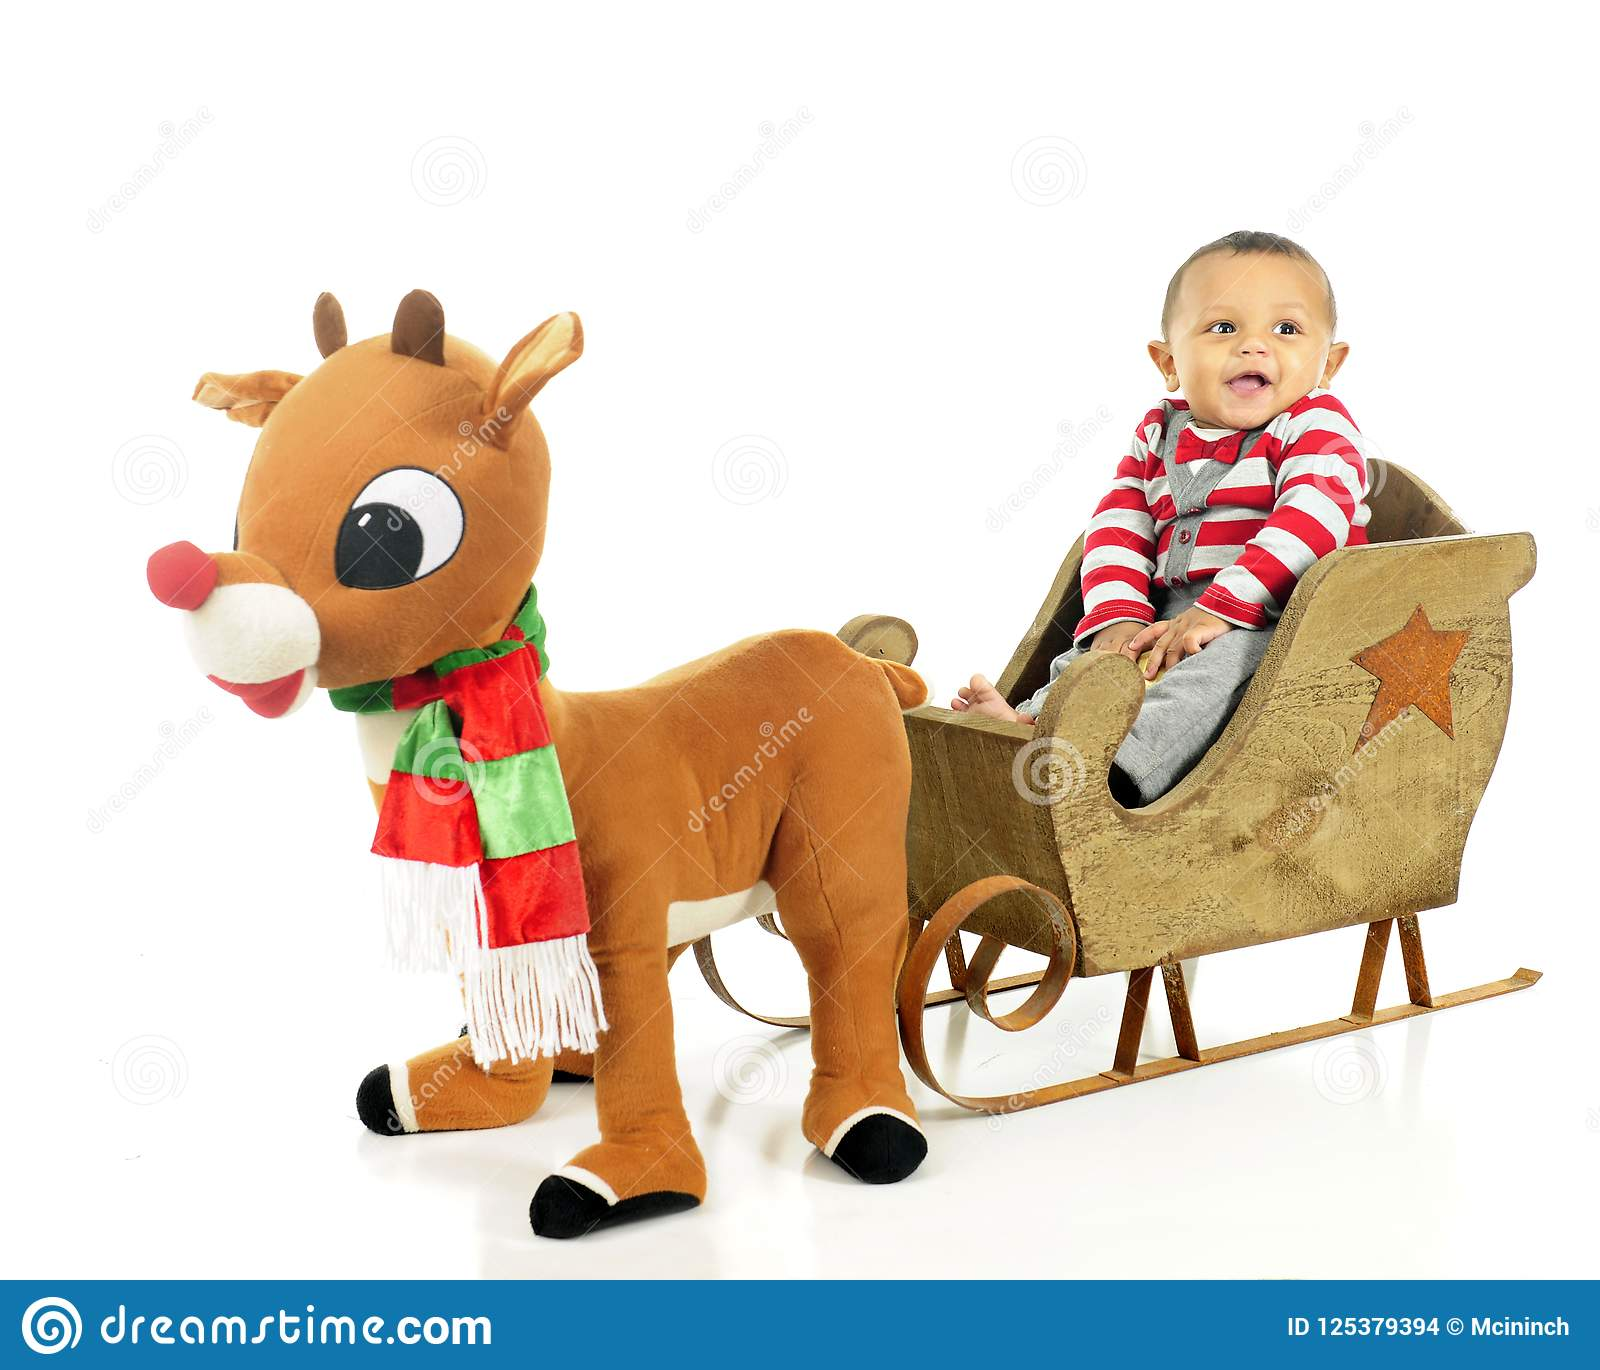 Ready for a Rudolph Ride